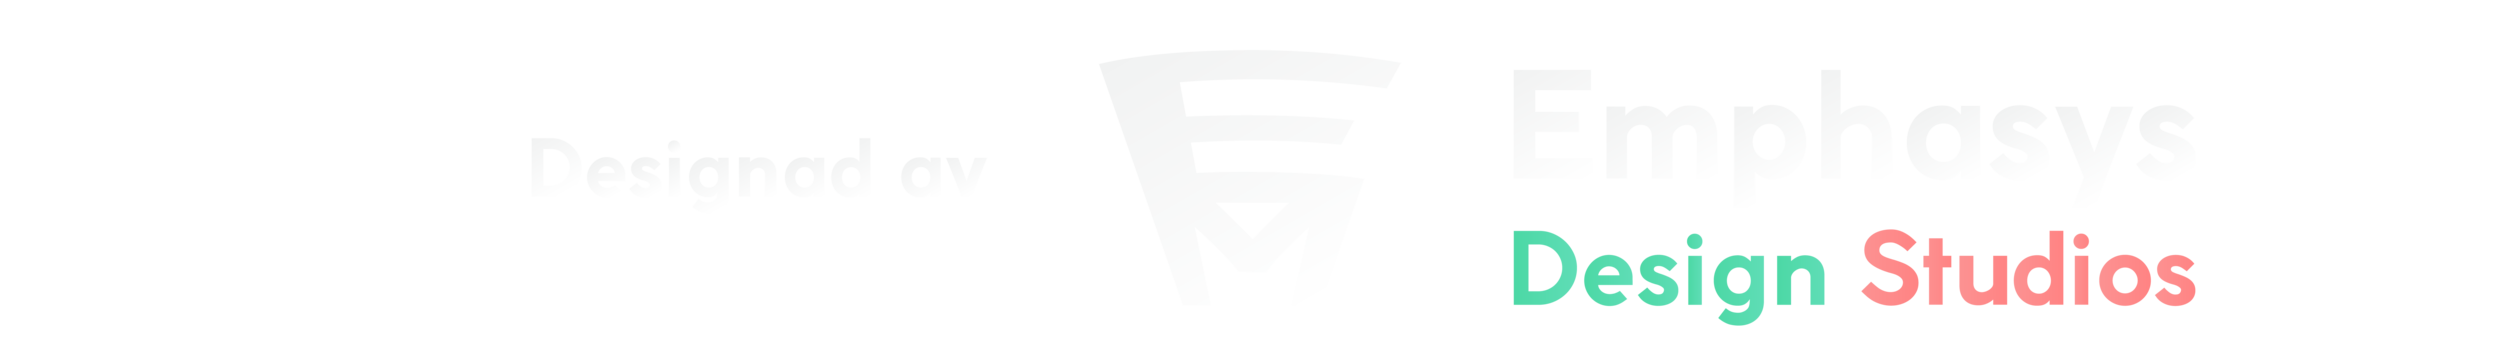 Standard Squarespace Emphasys Footer Logo 3-01.png